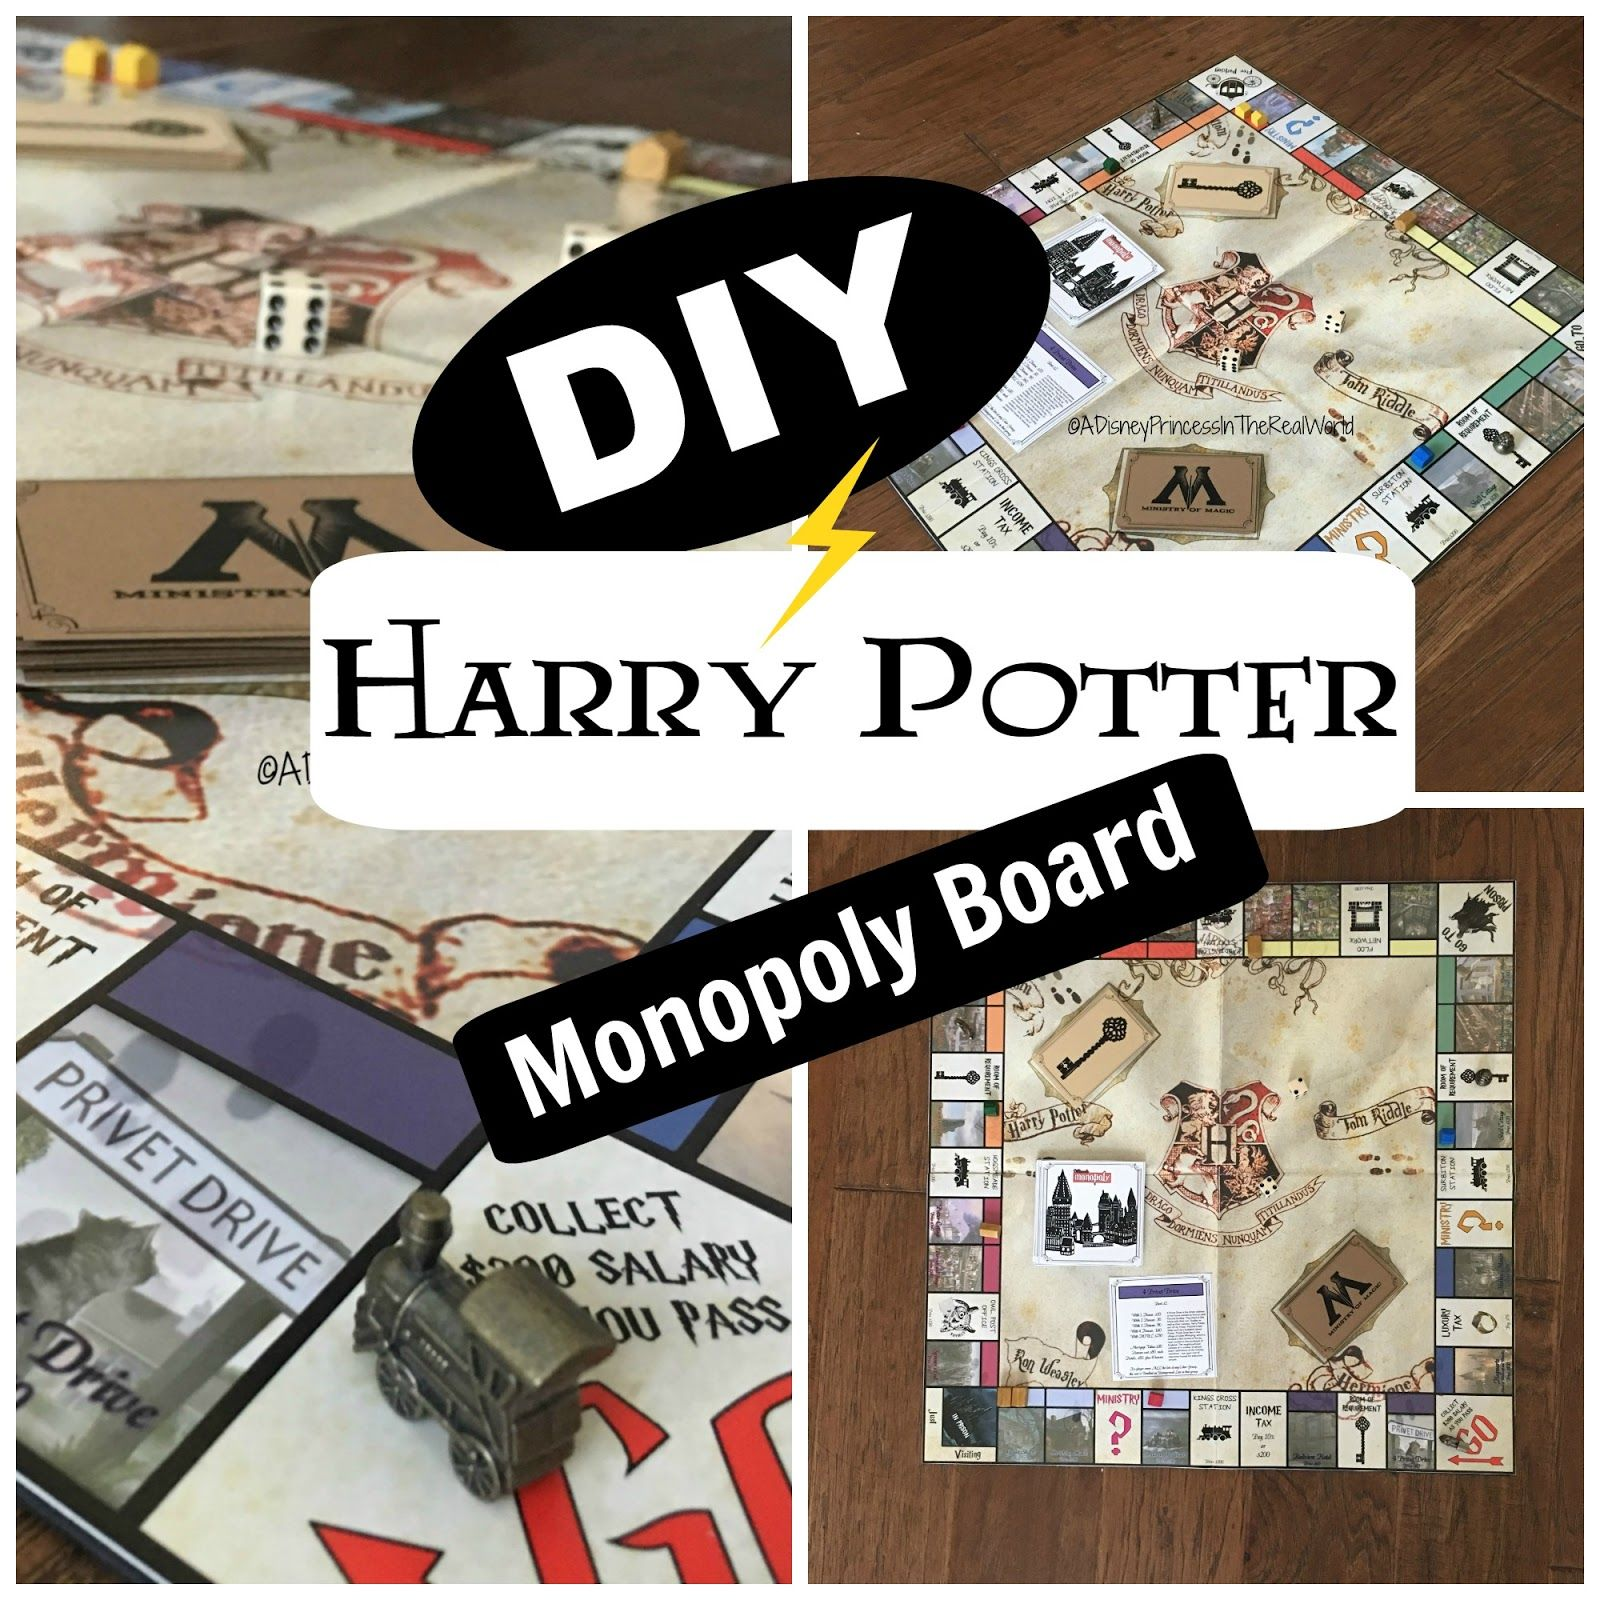 A Disney Princess in the real world DIY Harry Potter Monopoly board